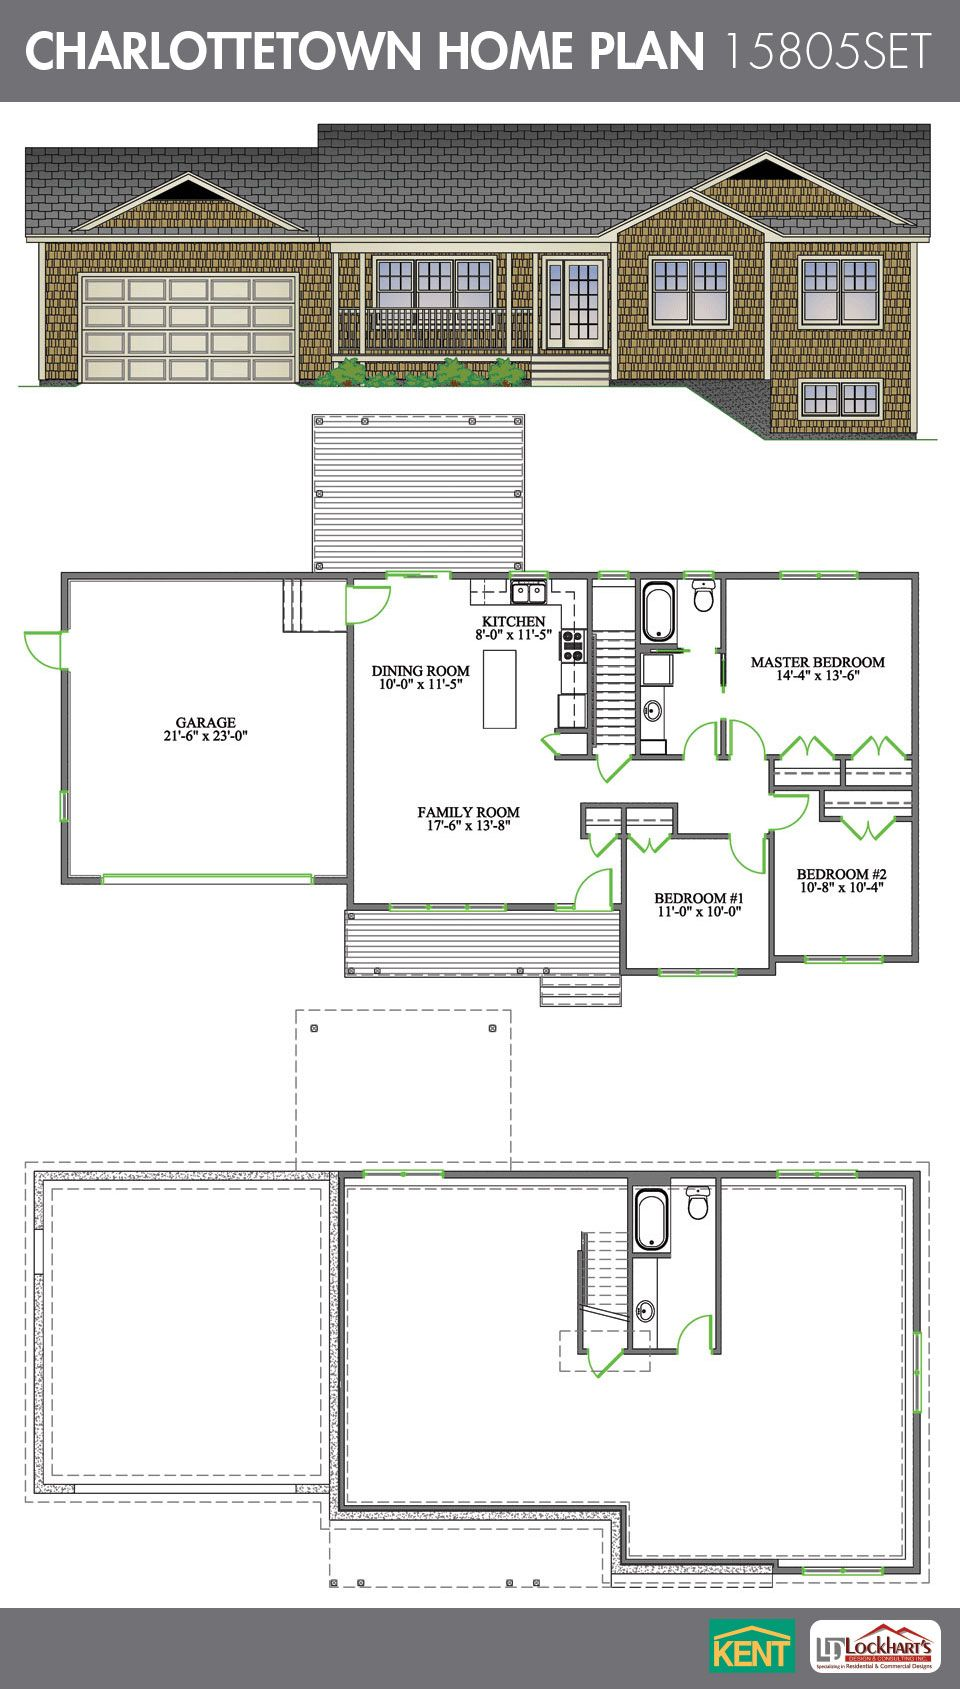 Charlottetown 3 bedroom 1 bathroom home plan features open concept living room dining room Master bedroom plan dwg